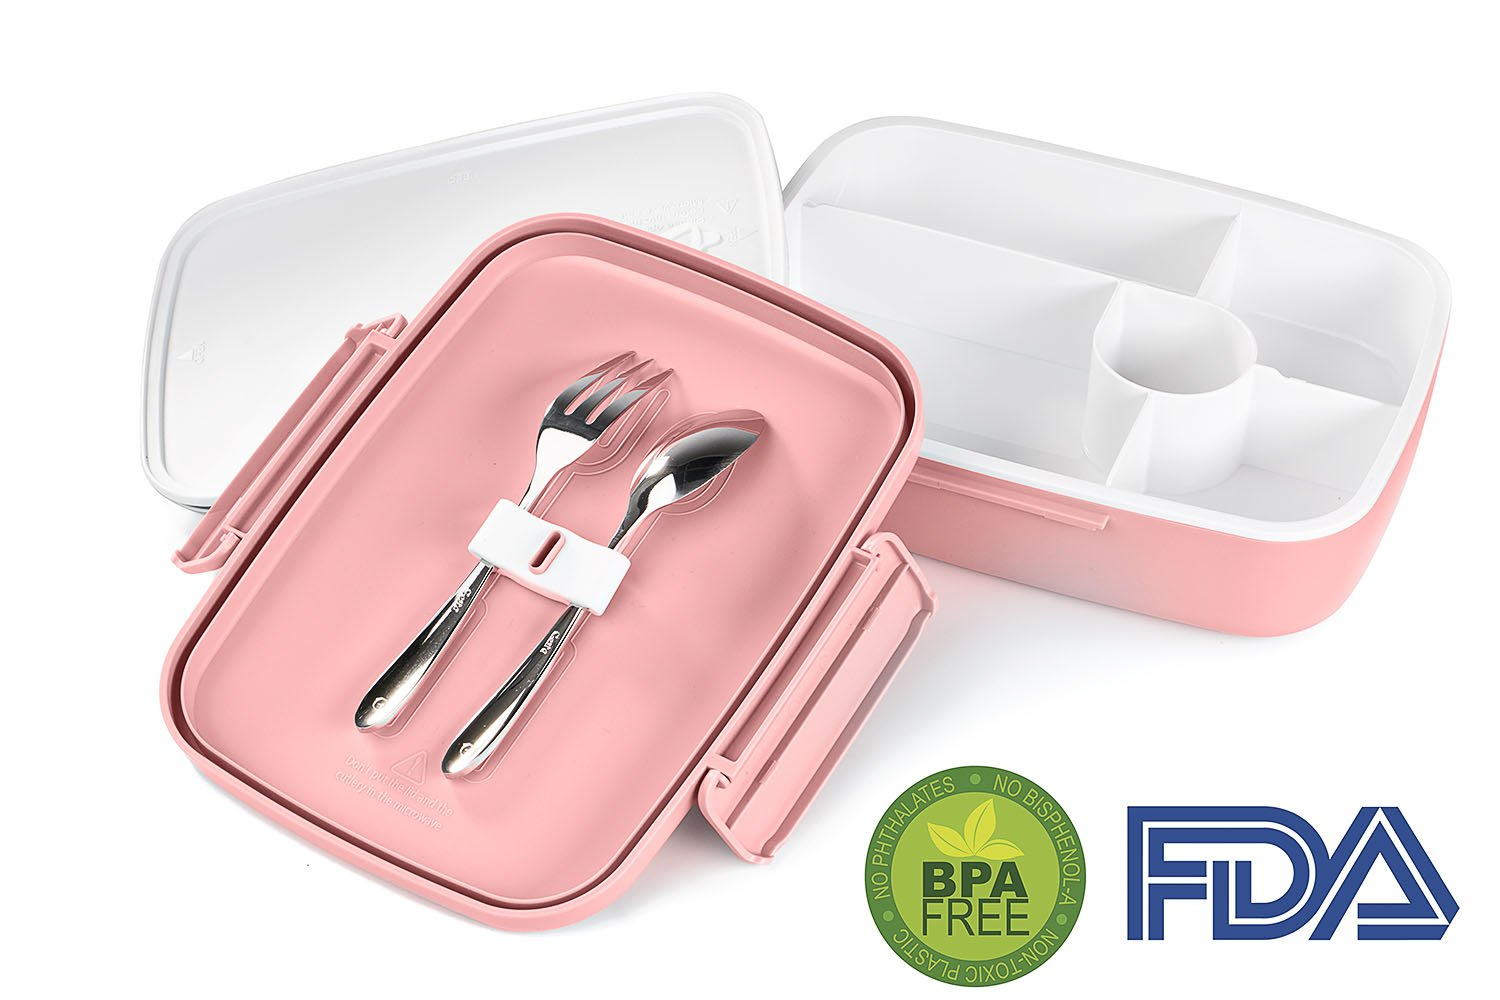 LS LifeStyle Bento Lunch Box 5 Compartments for Kids, Adults Leakproof, Microwave and Dishwasher Safe, BPA Free Container (Fork + Spoon Included) (Pink)